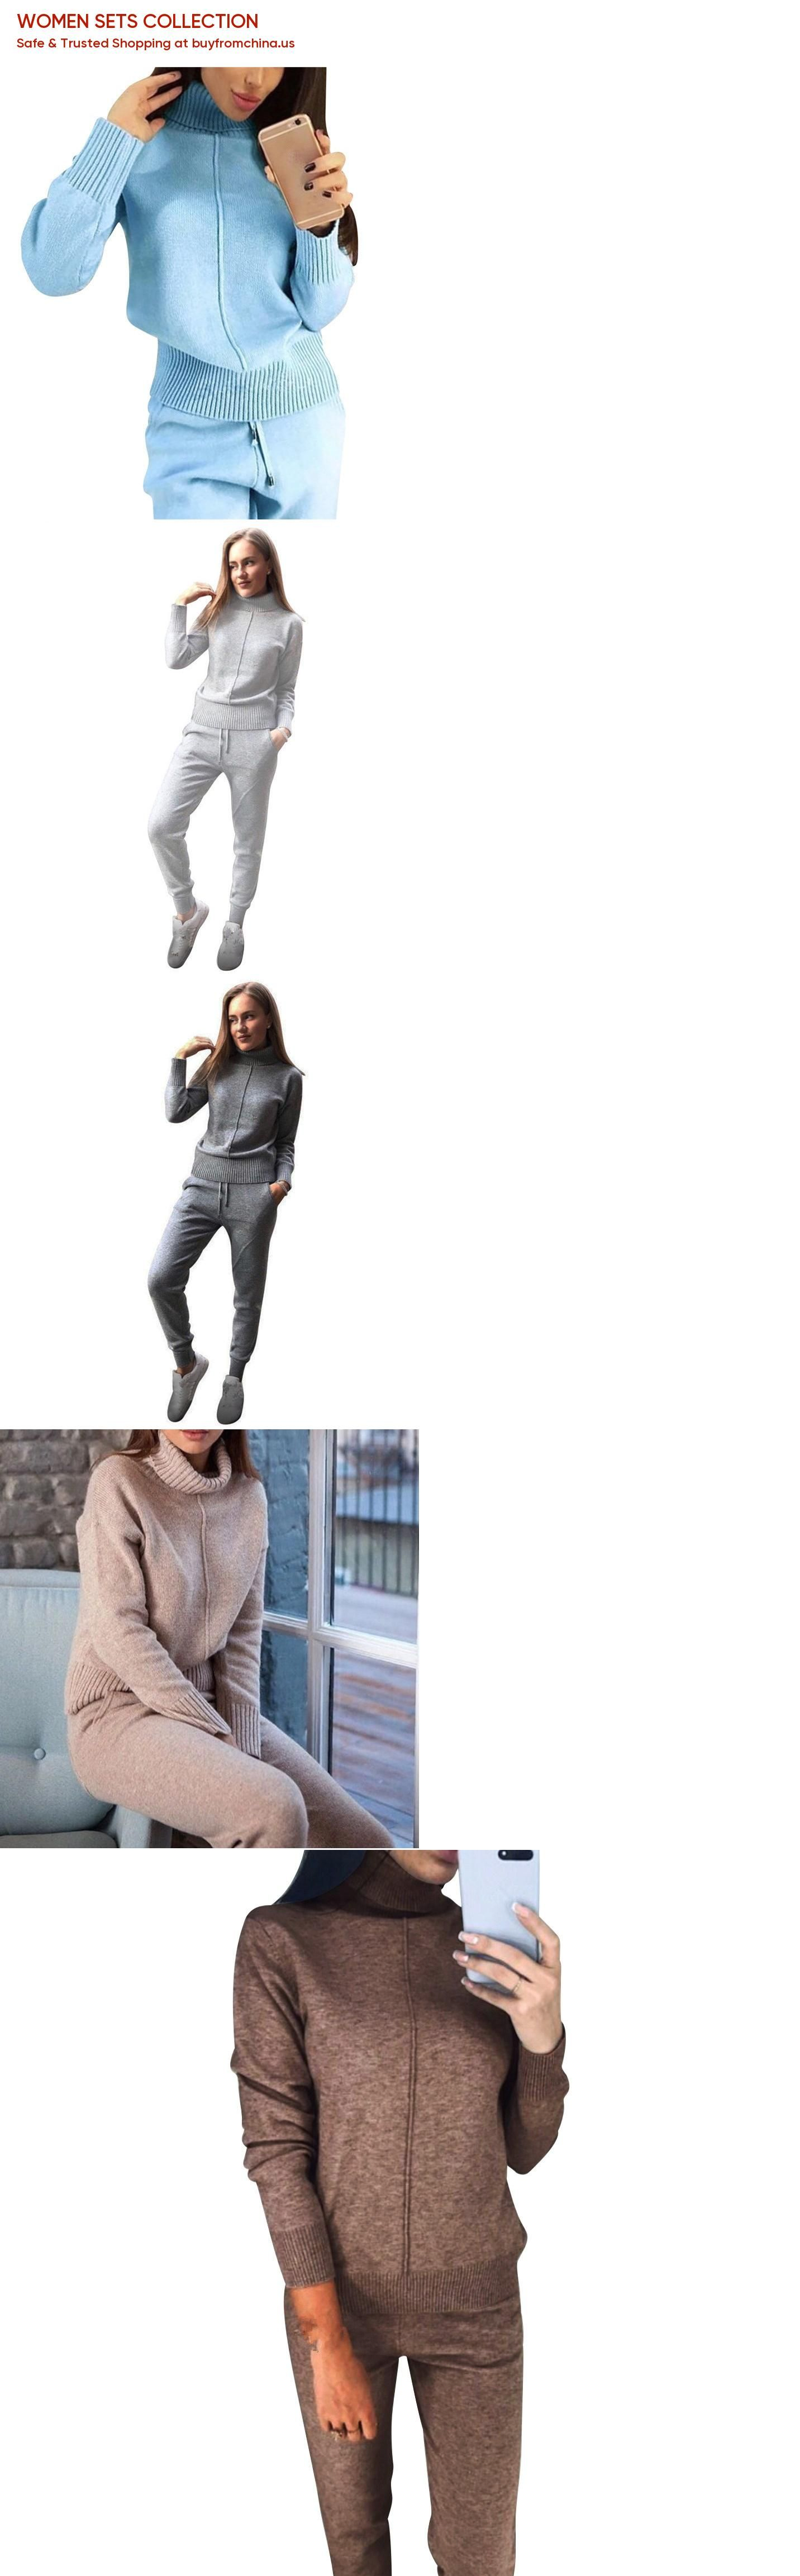 a2fbacae2d6ce Women Winter Woolen and Cashmere Knitted Warm Suit Turtleneck Sweater  Cashmere Pants Loose Two-piece Set Knit